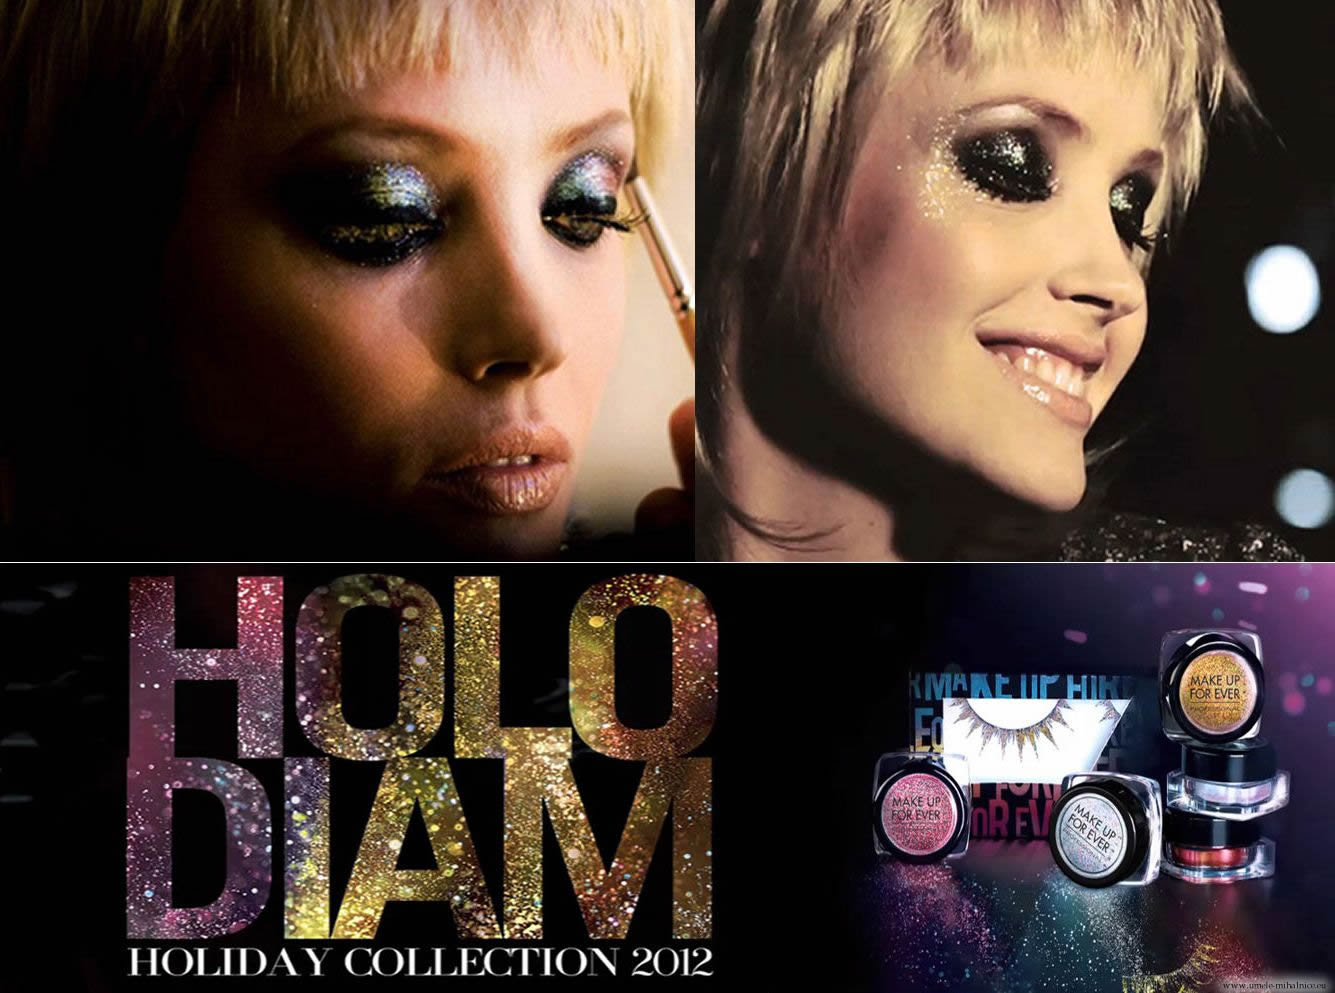 Make Up For Ever Holodiam 2012 | abeautyfeature.blogspot.sk